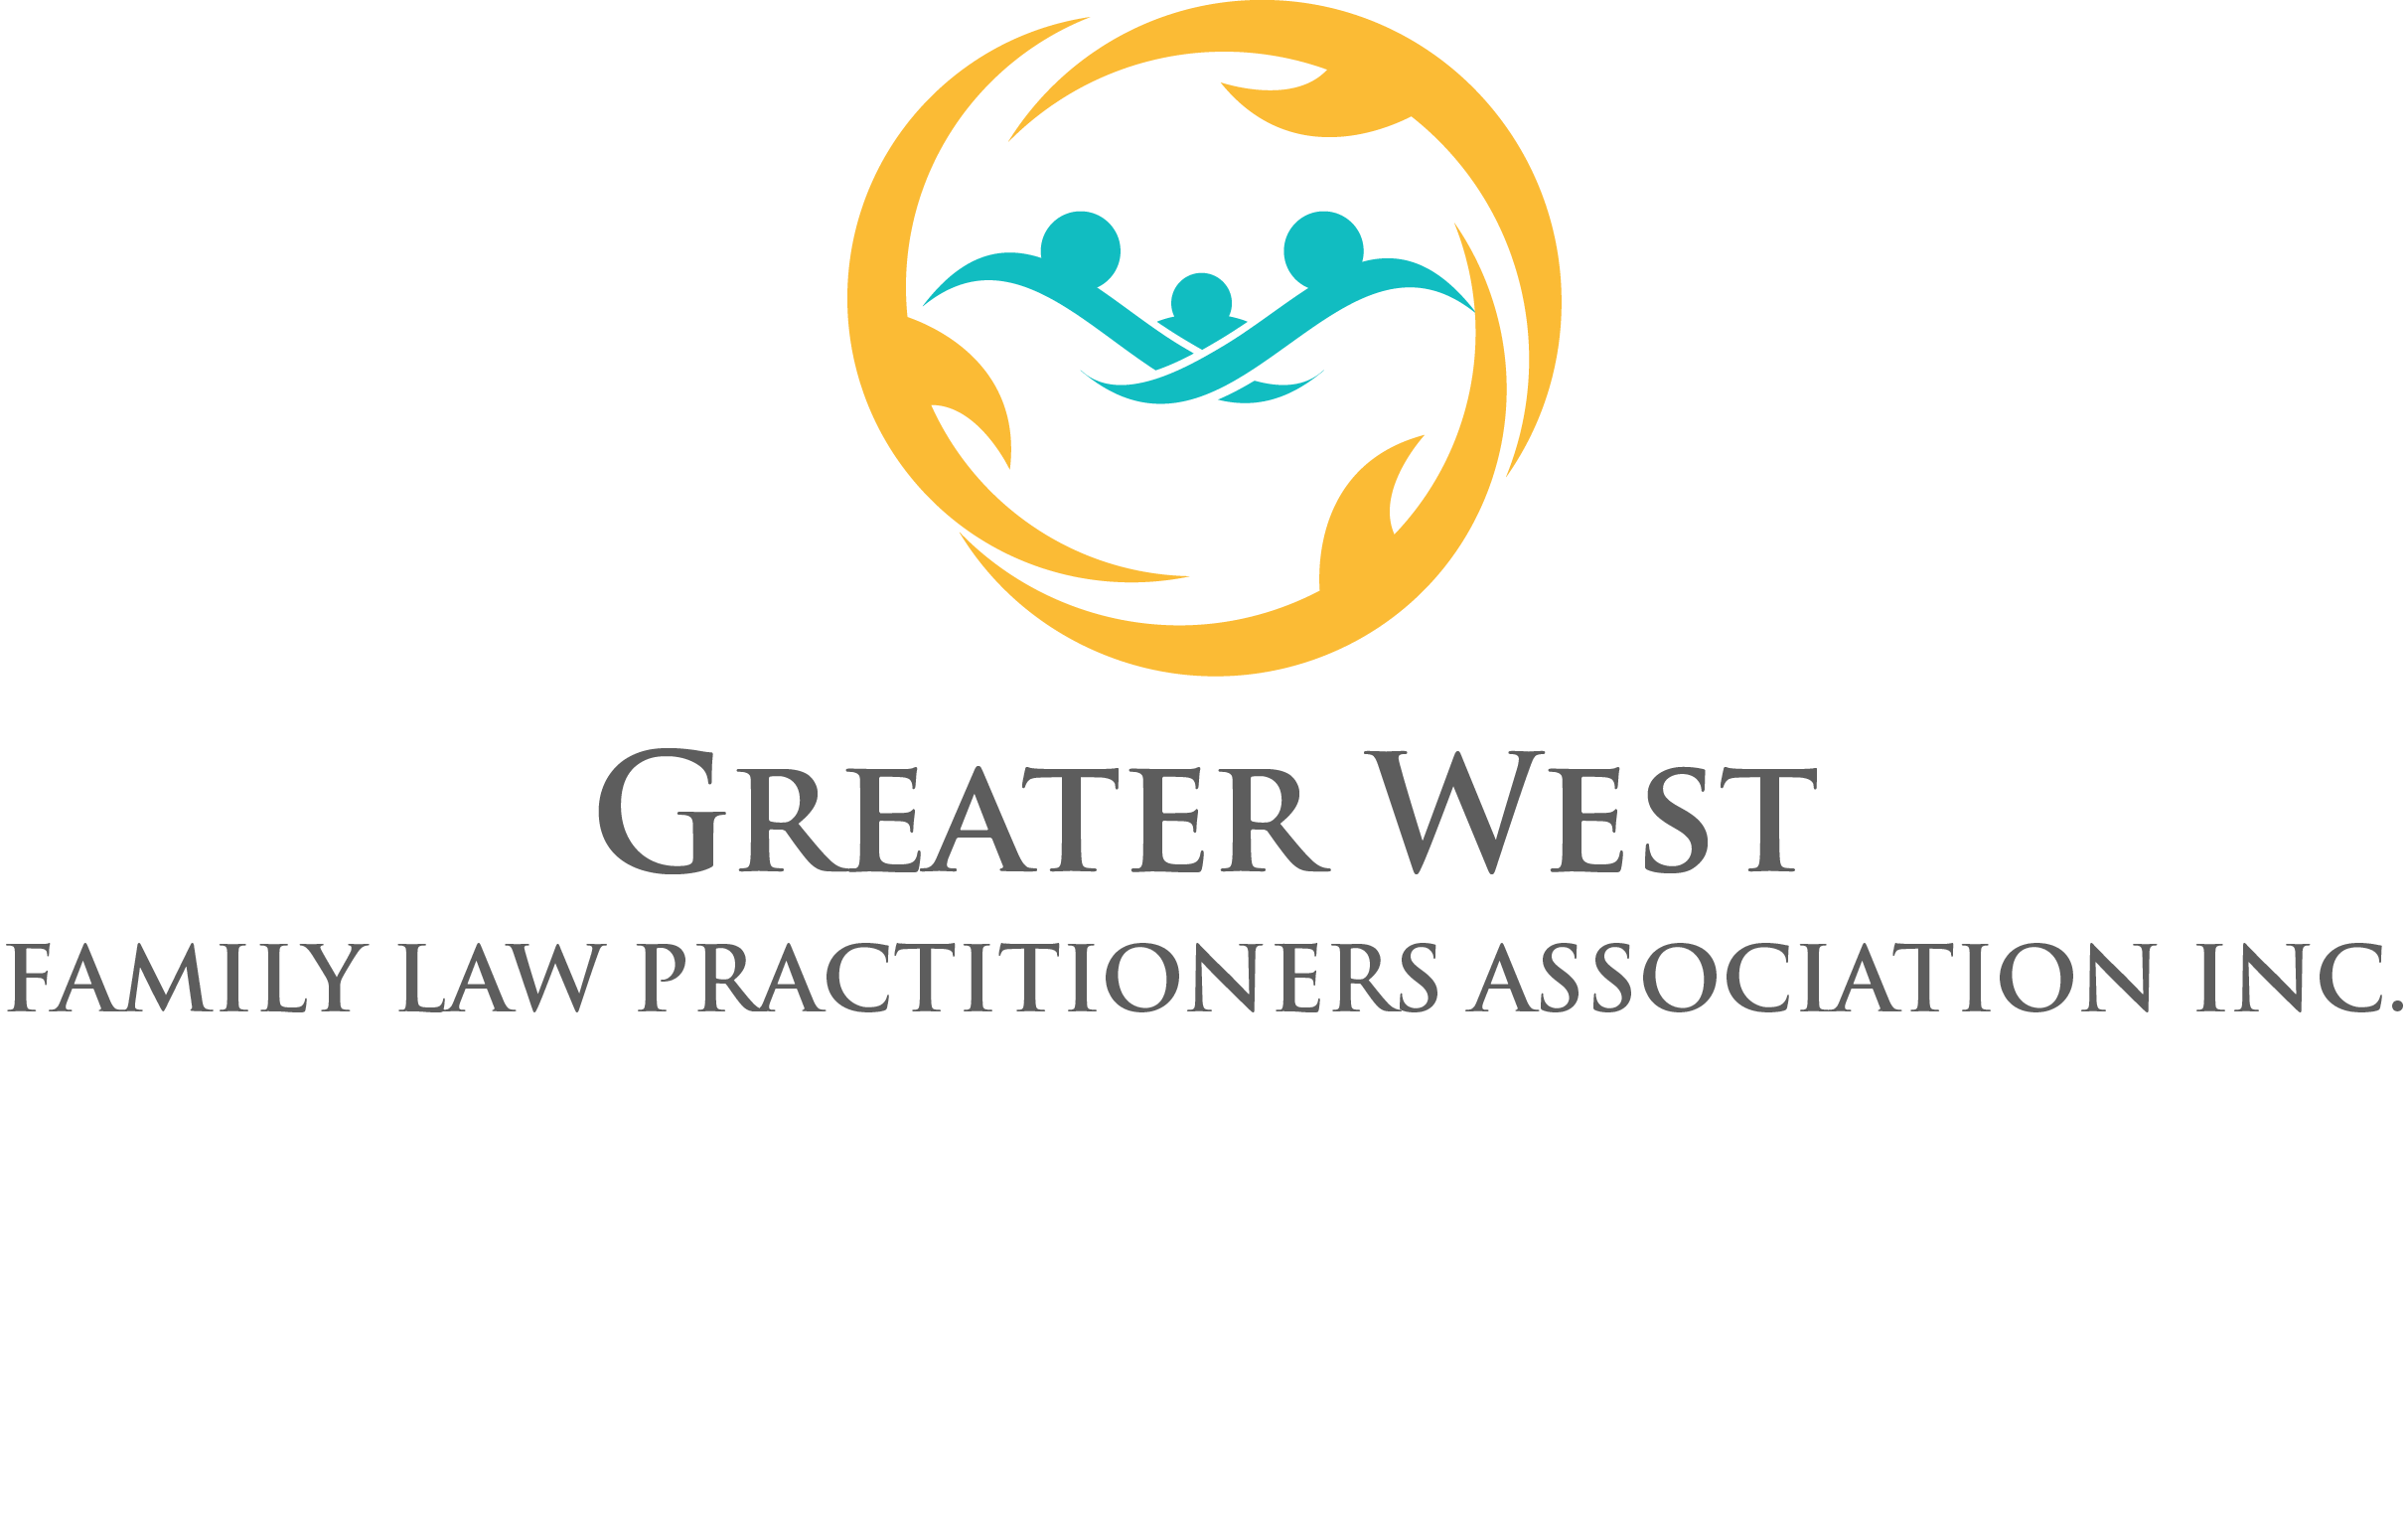 Greater West Family Law Practitioners Association - Annual Dinner